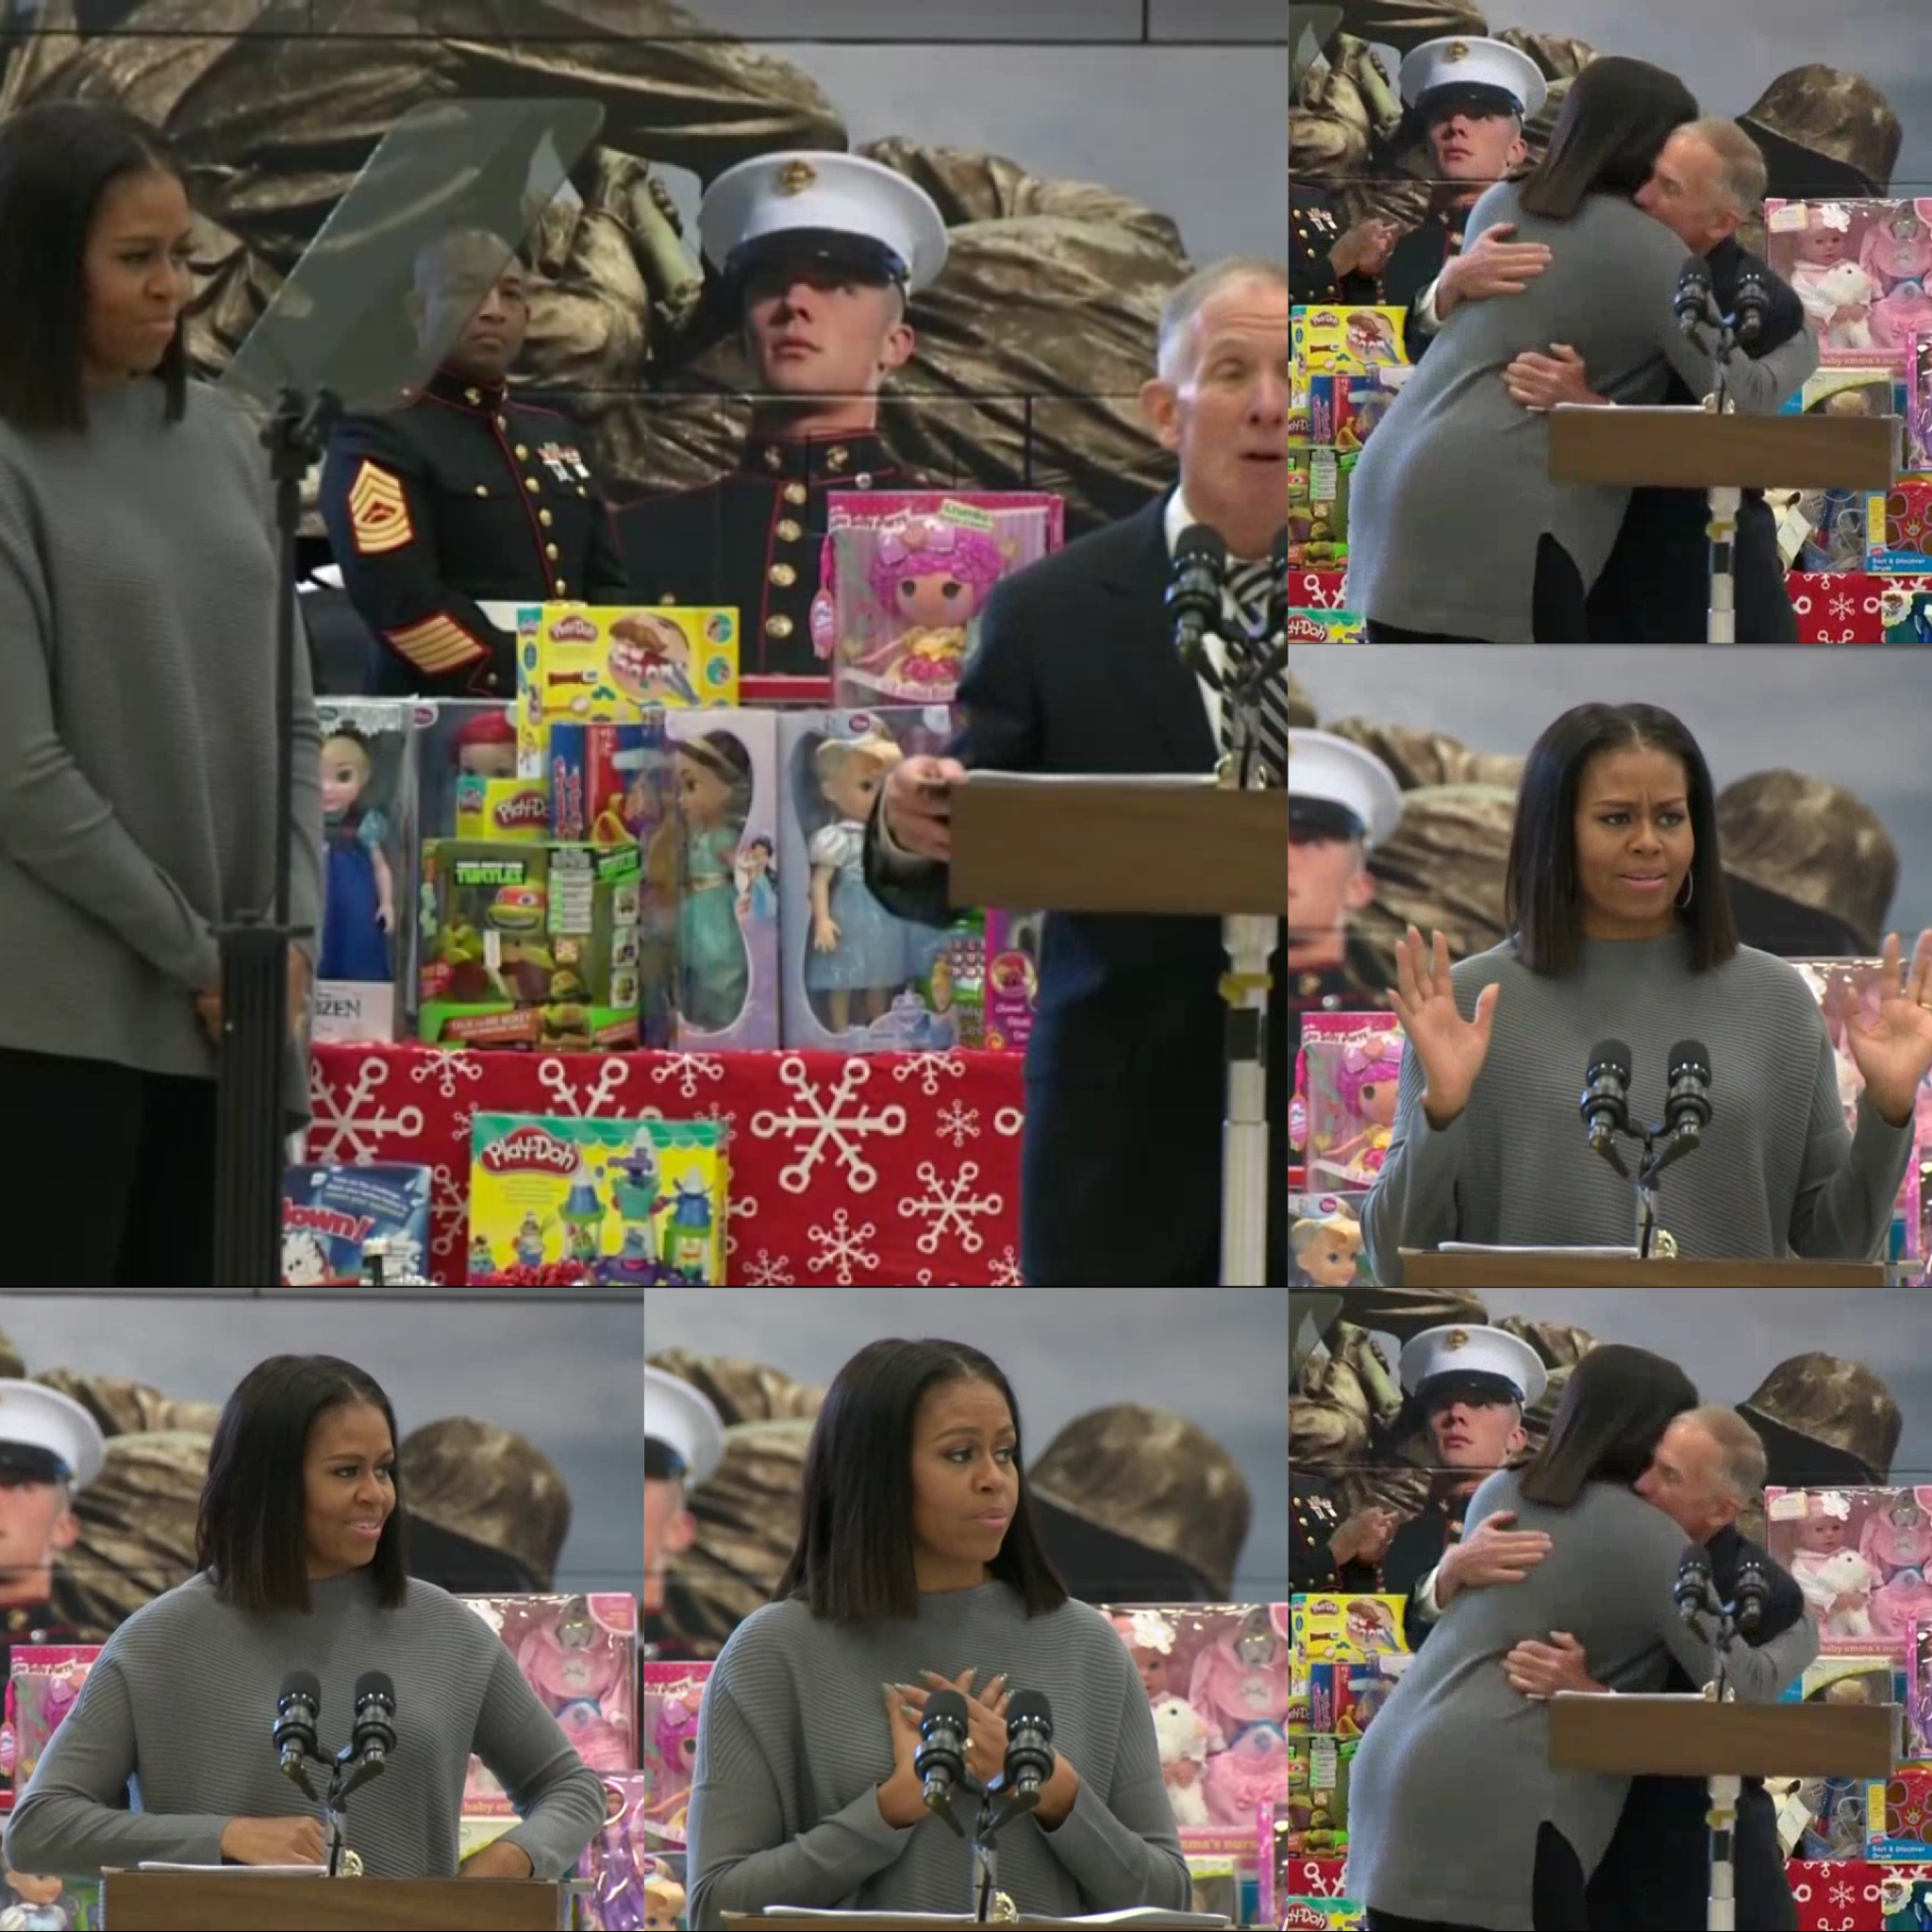 Toys for tots images  FirstLady Of The United States Of America MichelleObama Toys for